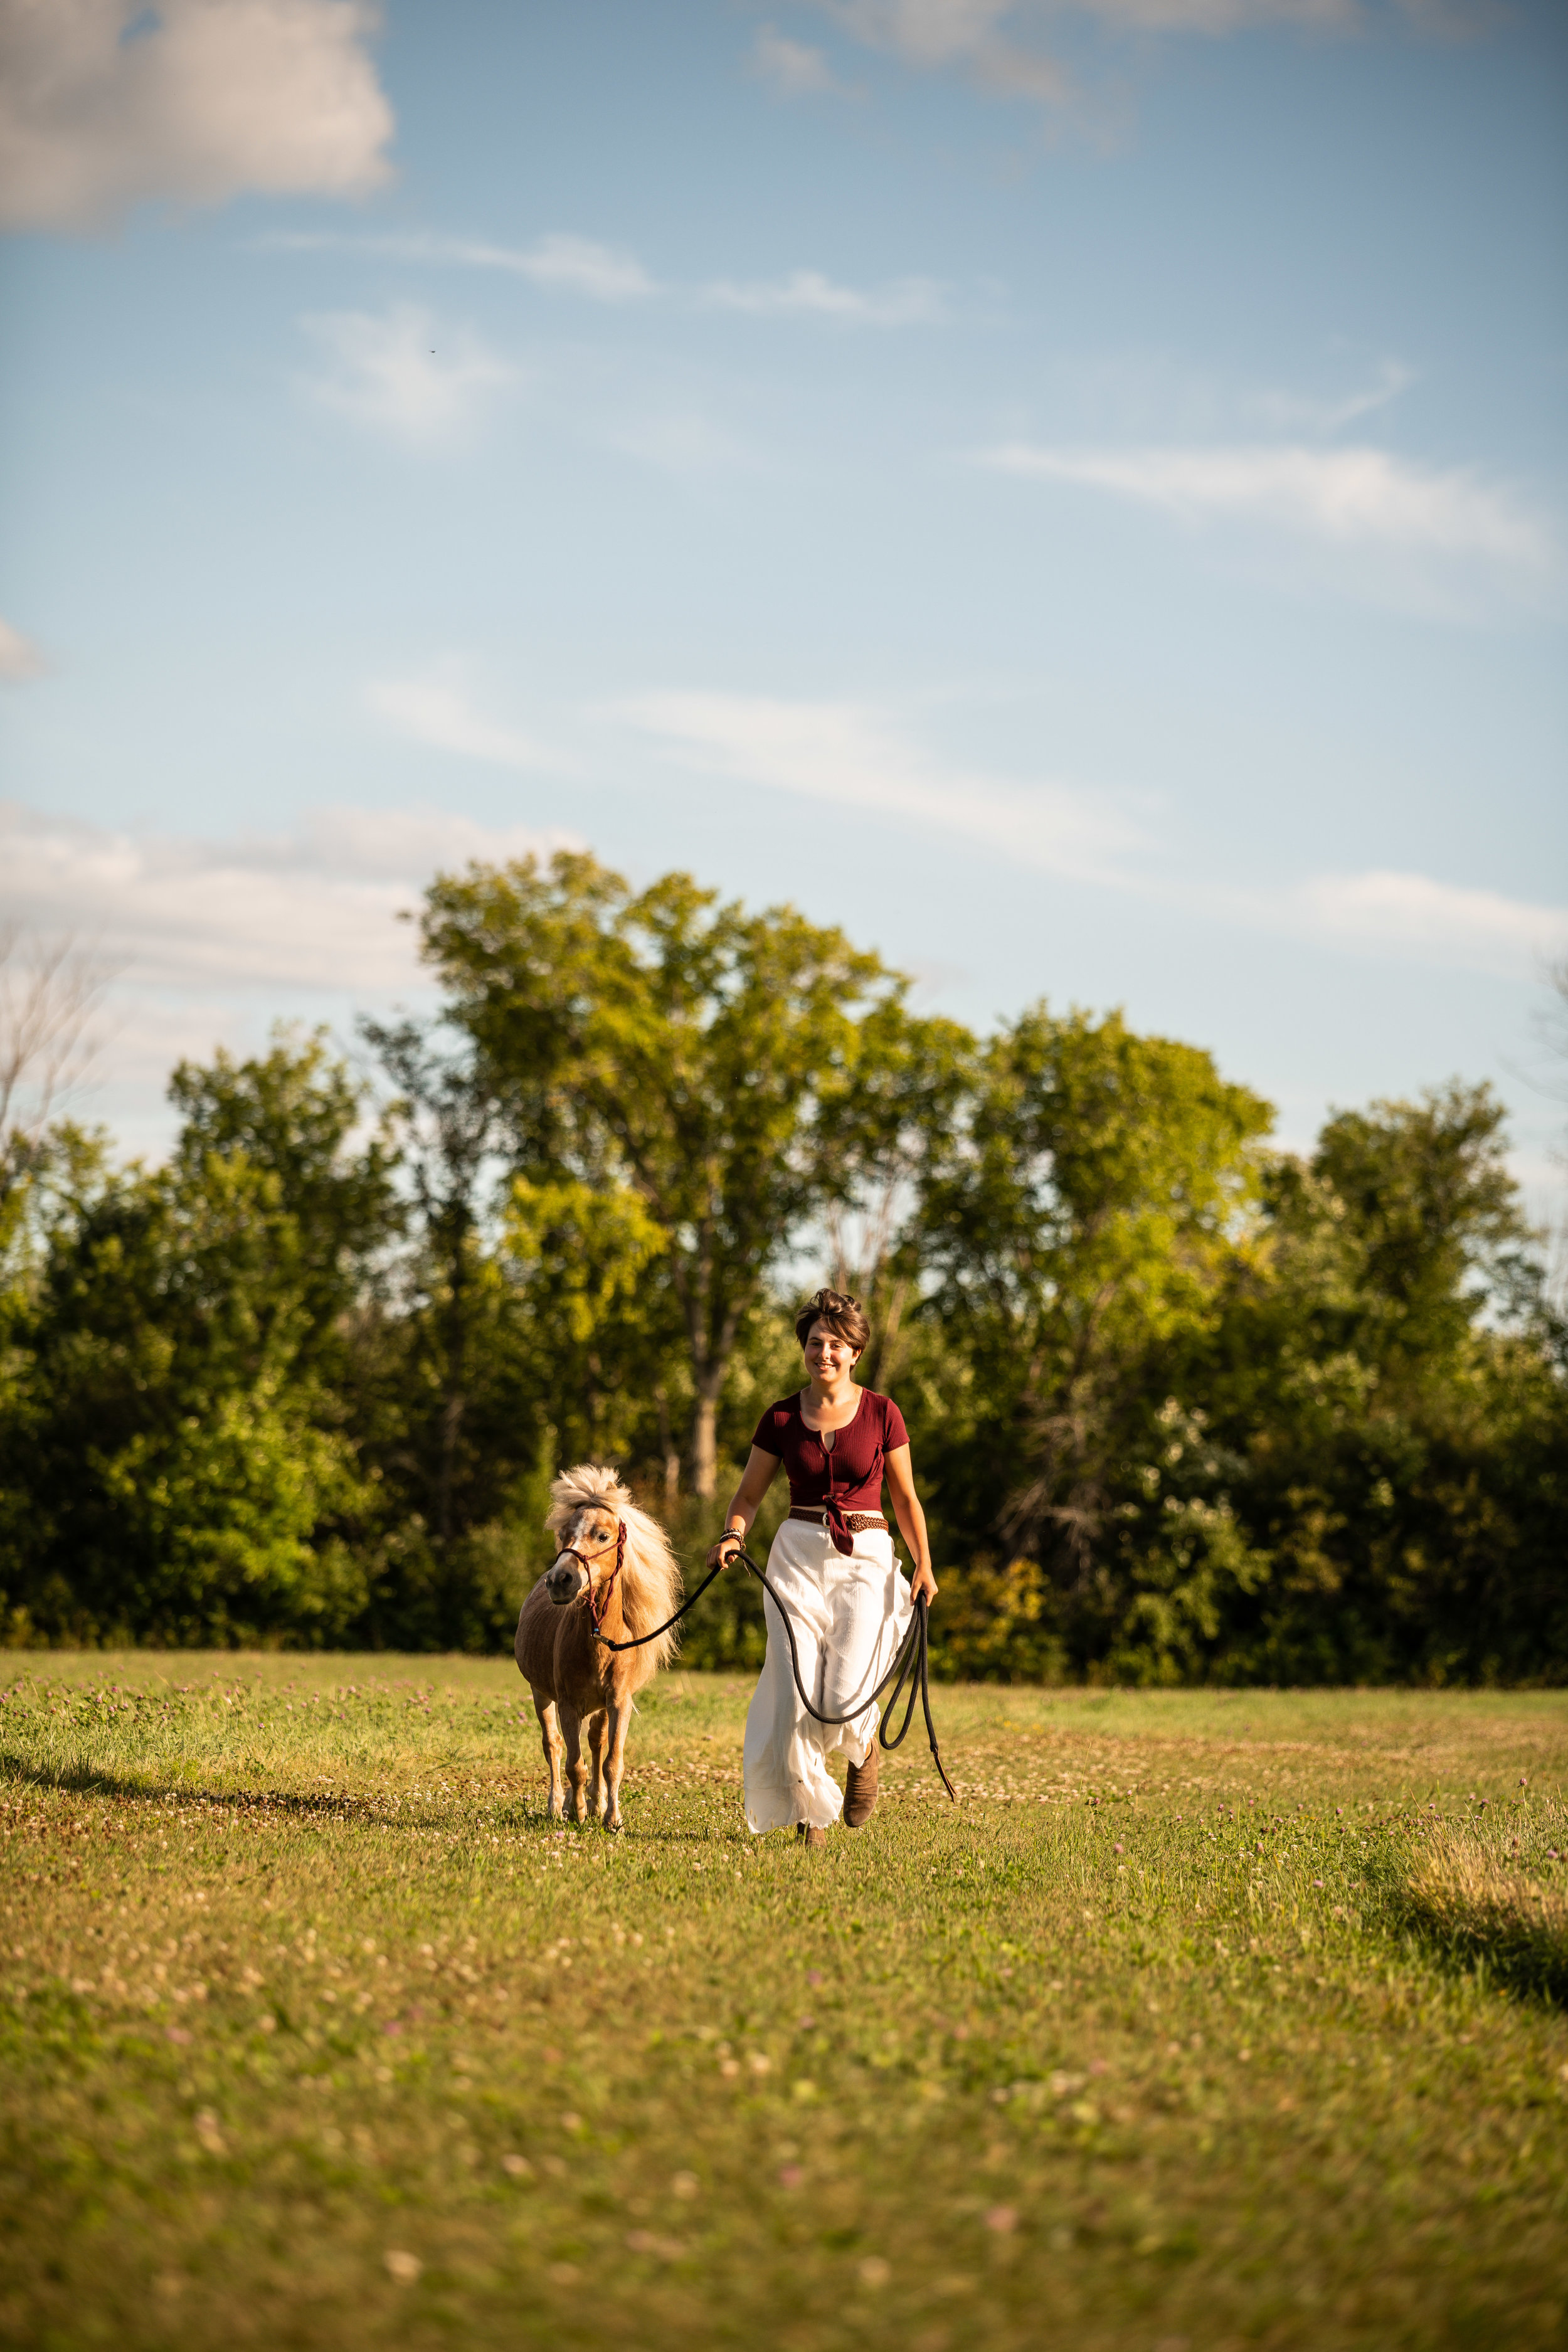 A girl and her mini horse